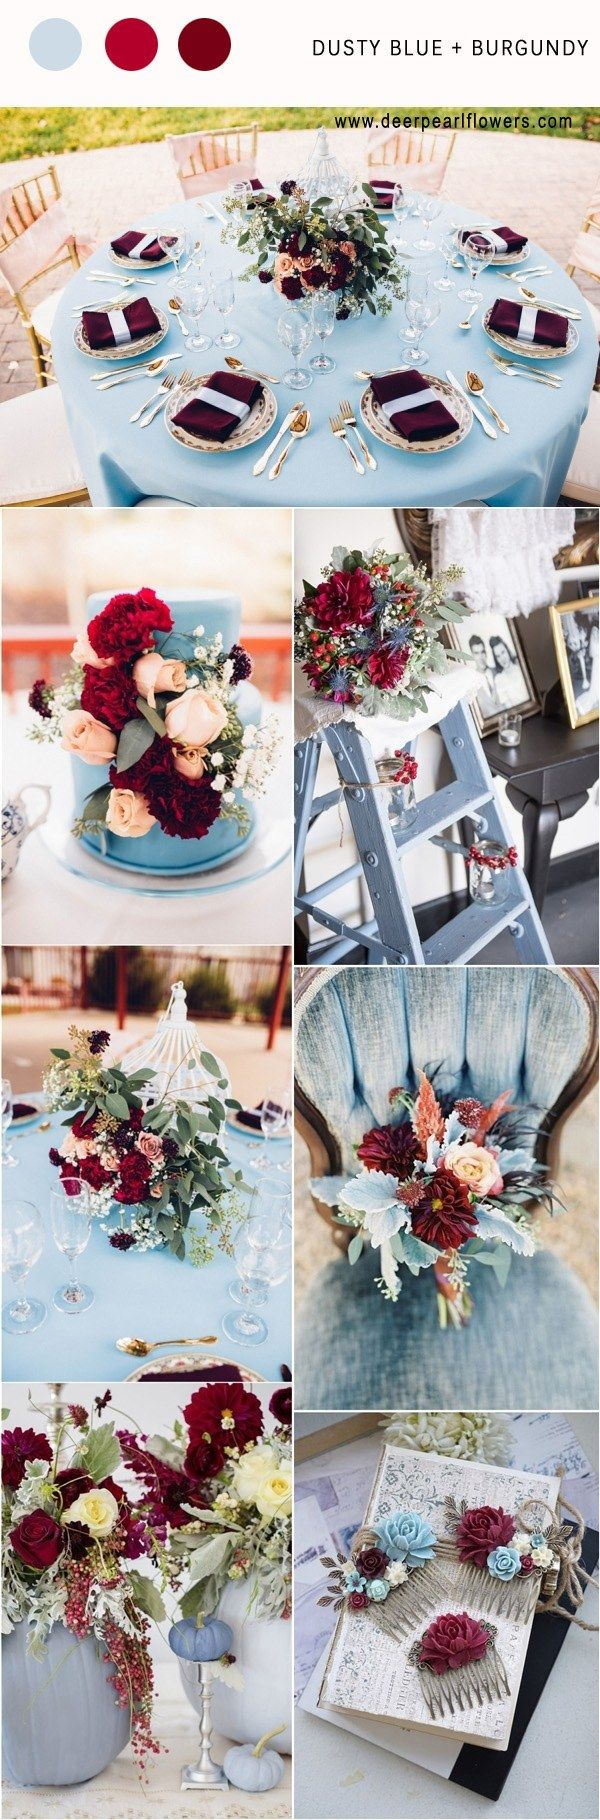 Wedding decorations dusty blue december 2018  best My wedding images on Pinterest  Weddings Mariage and